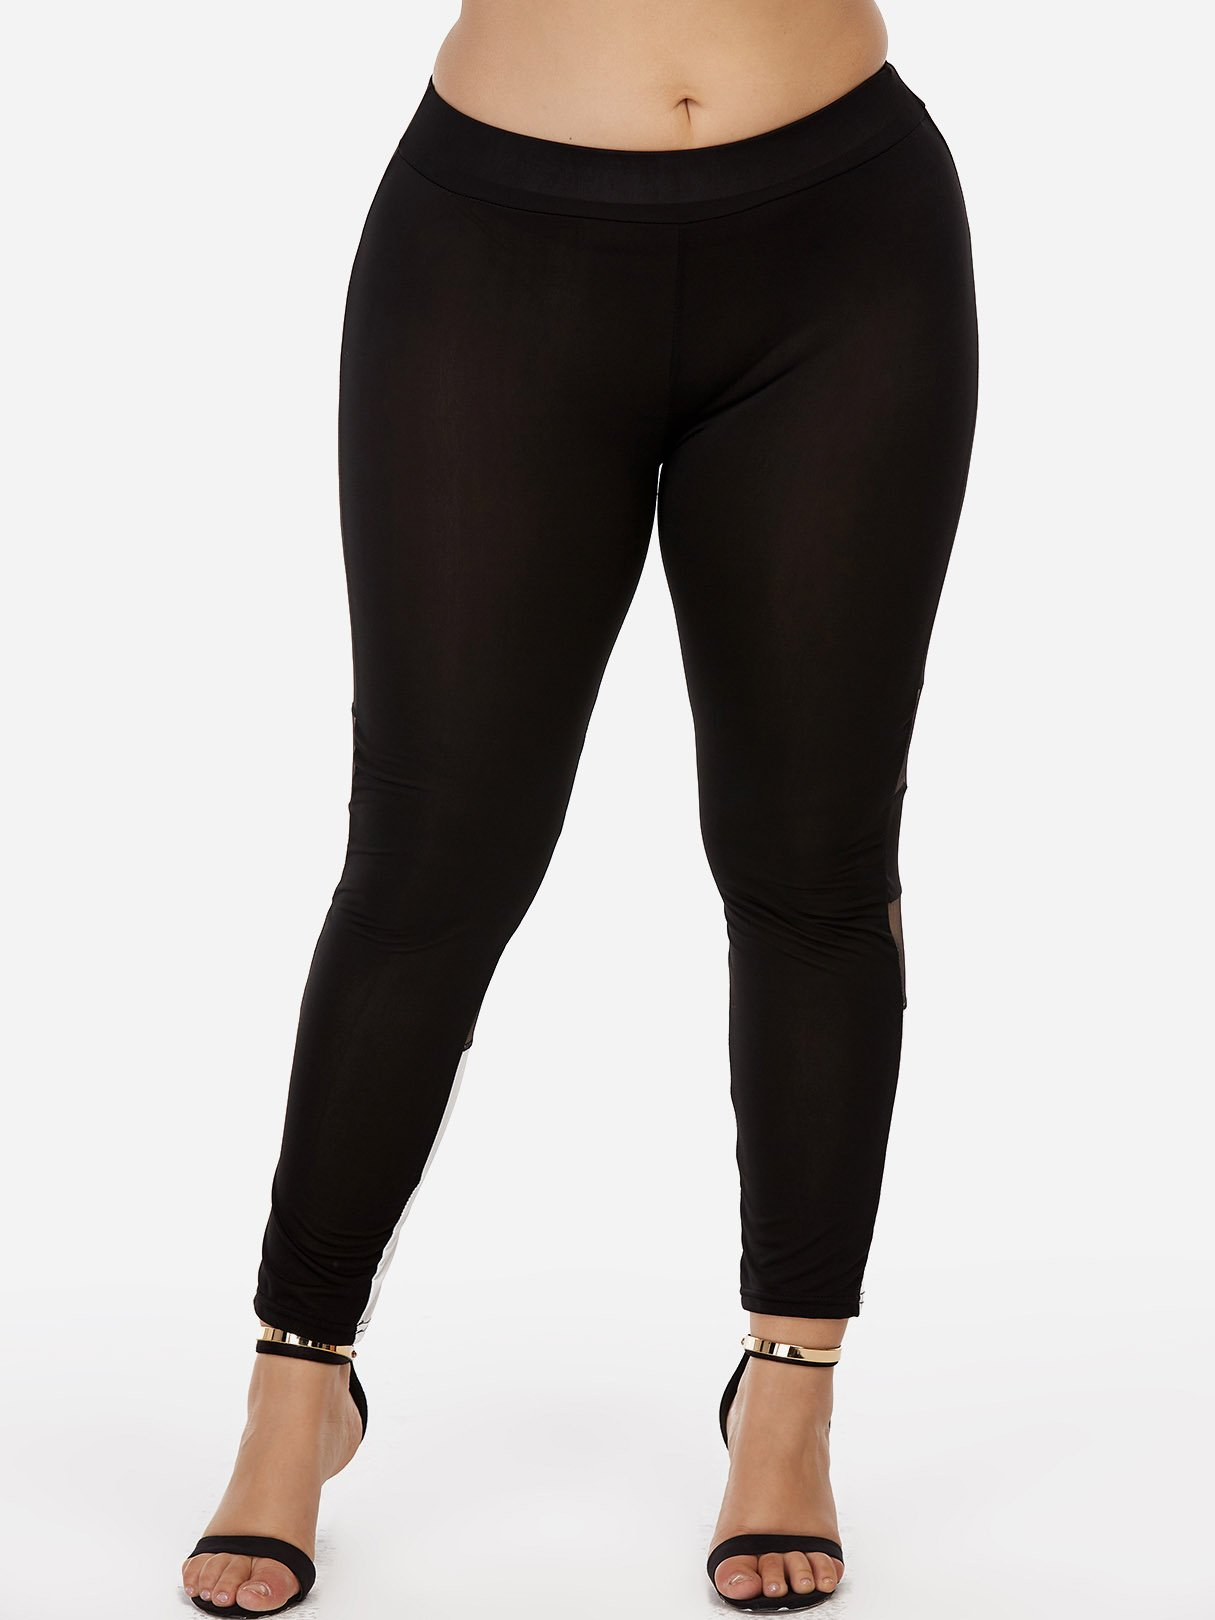 Plus Size Bottoms